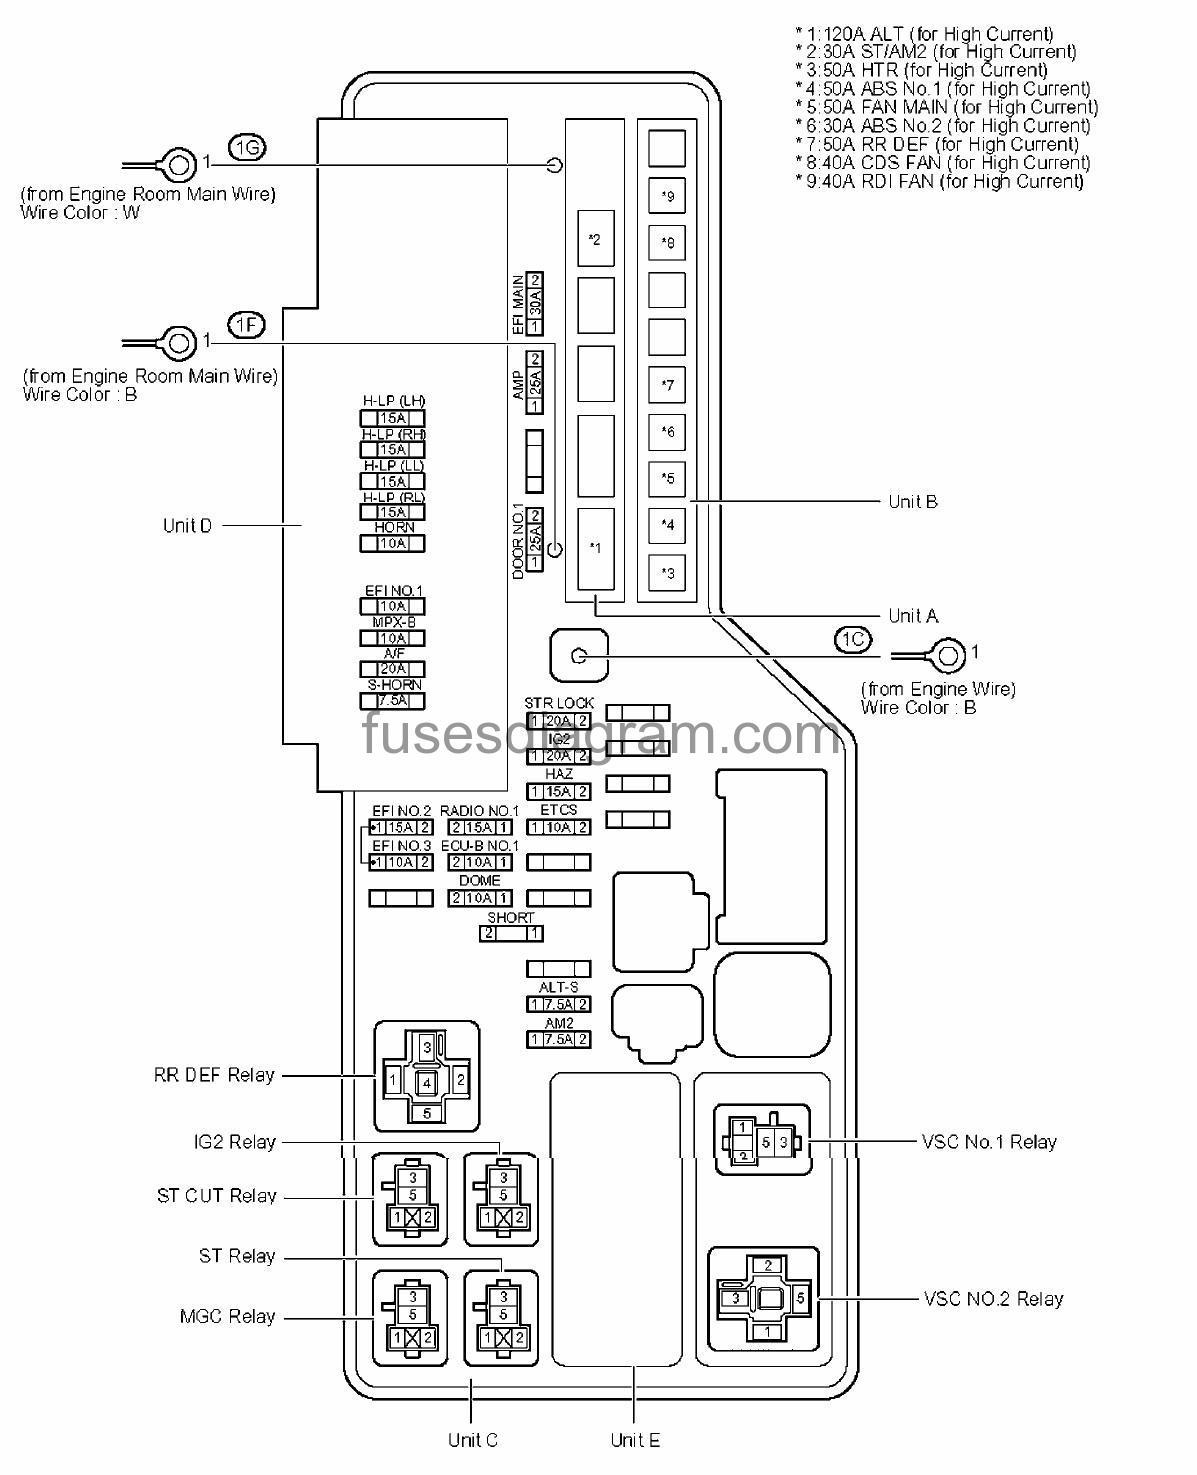 2000 Toyota Solara Engine Diagram / Solara Wiring Diagrams